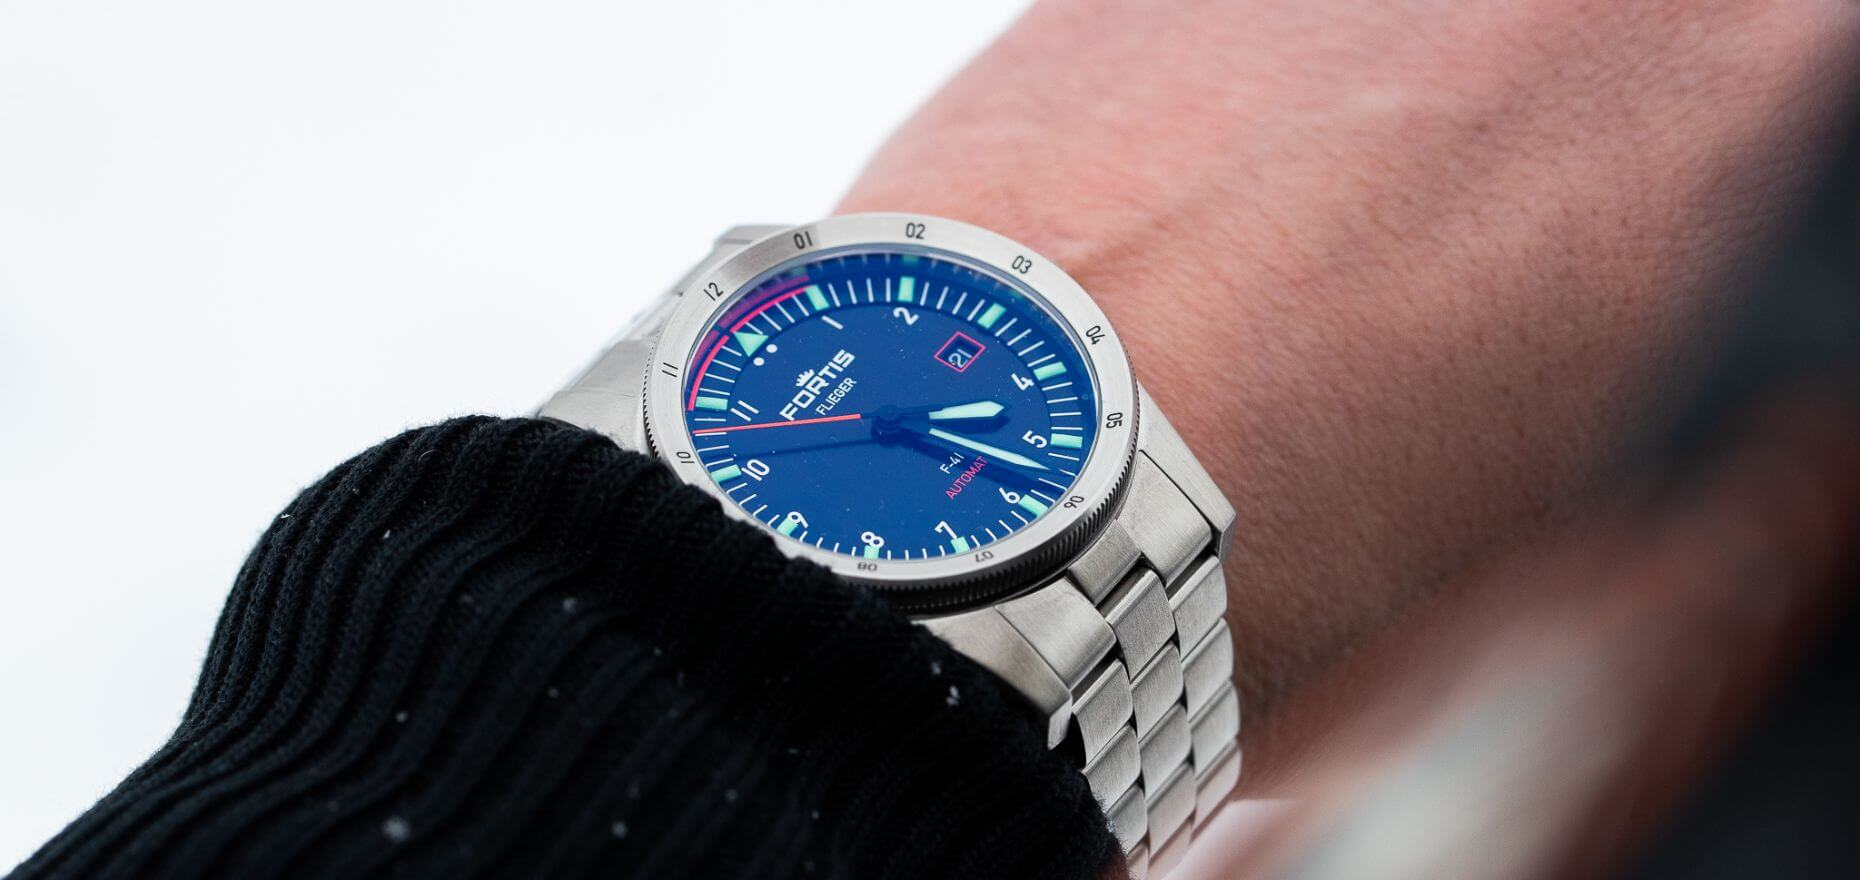 Hands-On Review: The new Fortis Flieger Collection